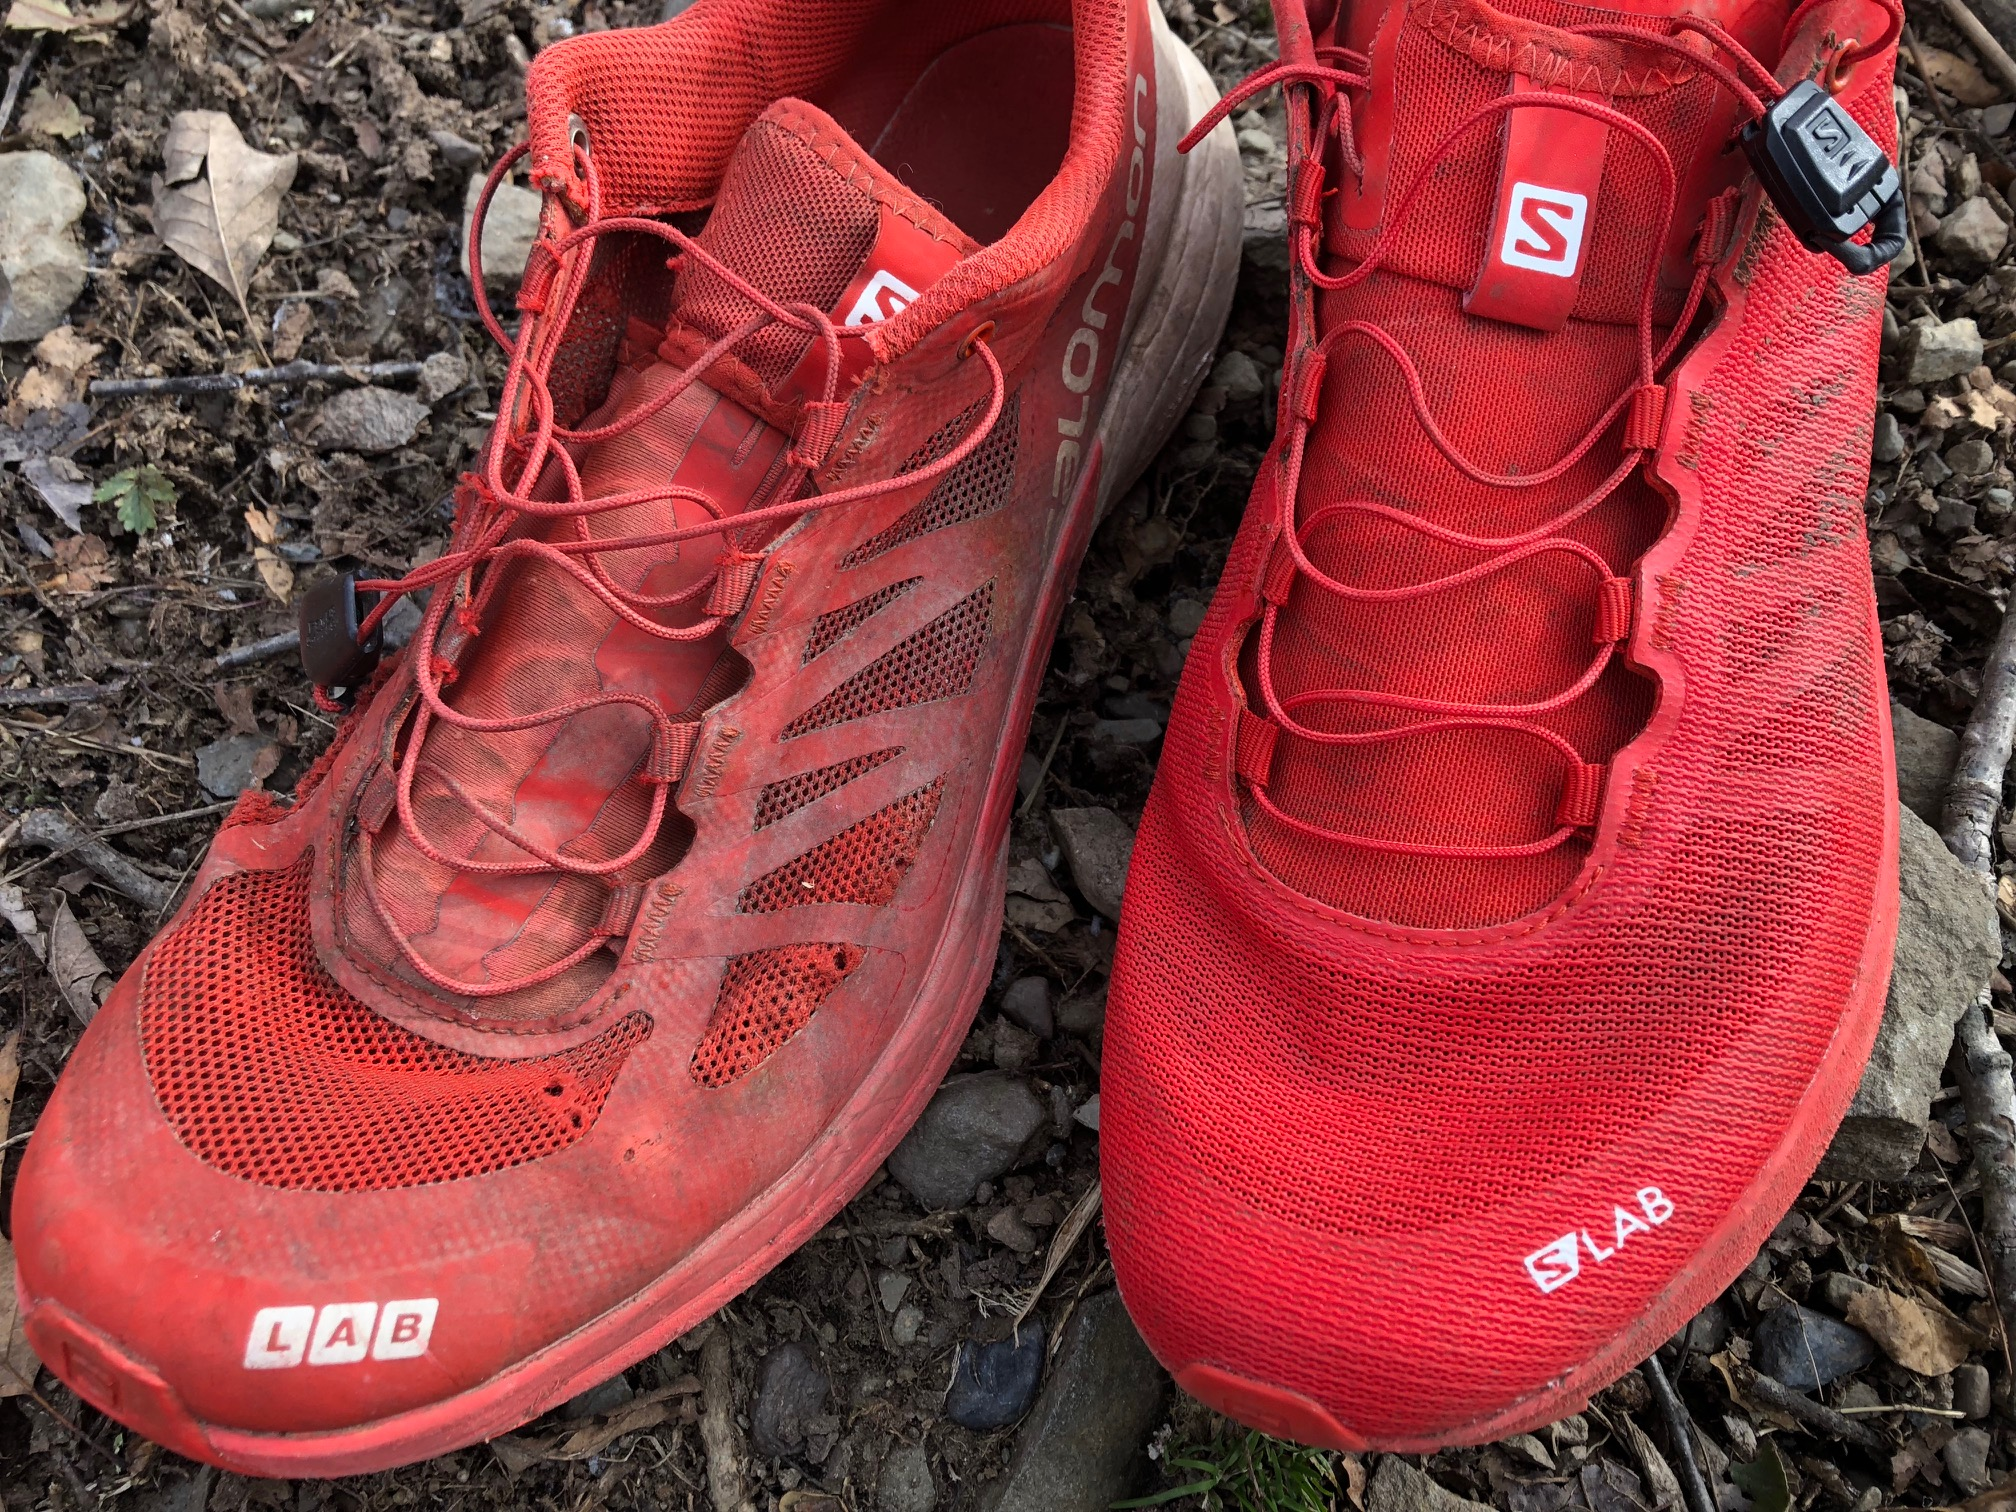 new product 58dad d1410 Salomon S/LAB Sense 7 FG Shoe Review — Mountain Peak Fitness